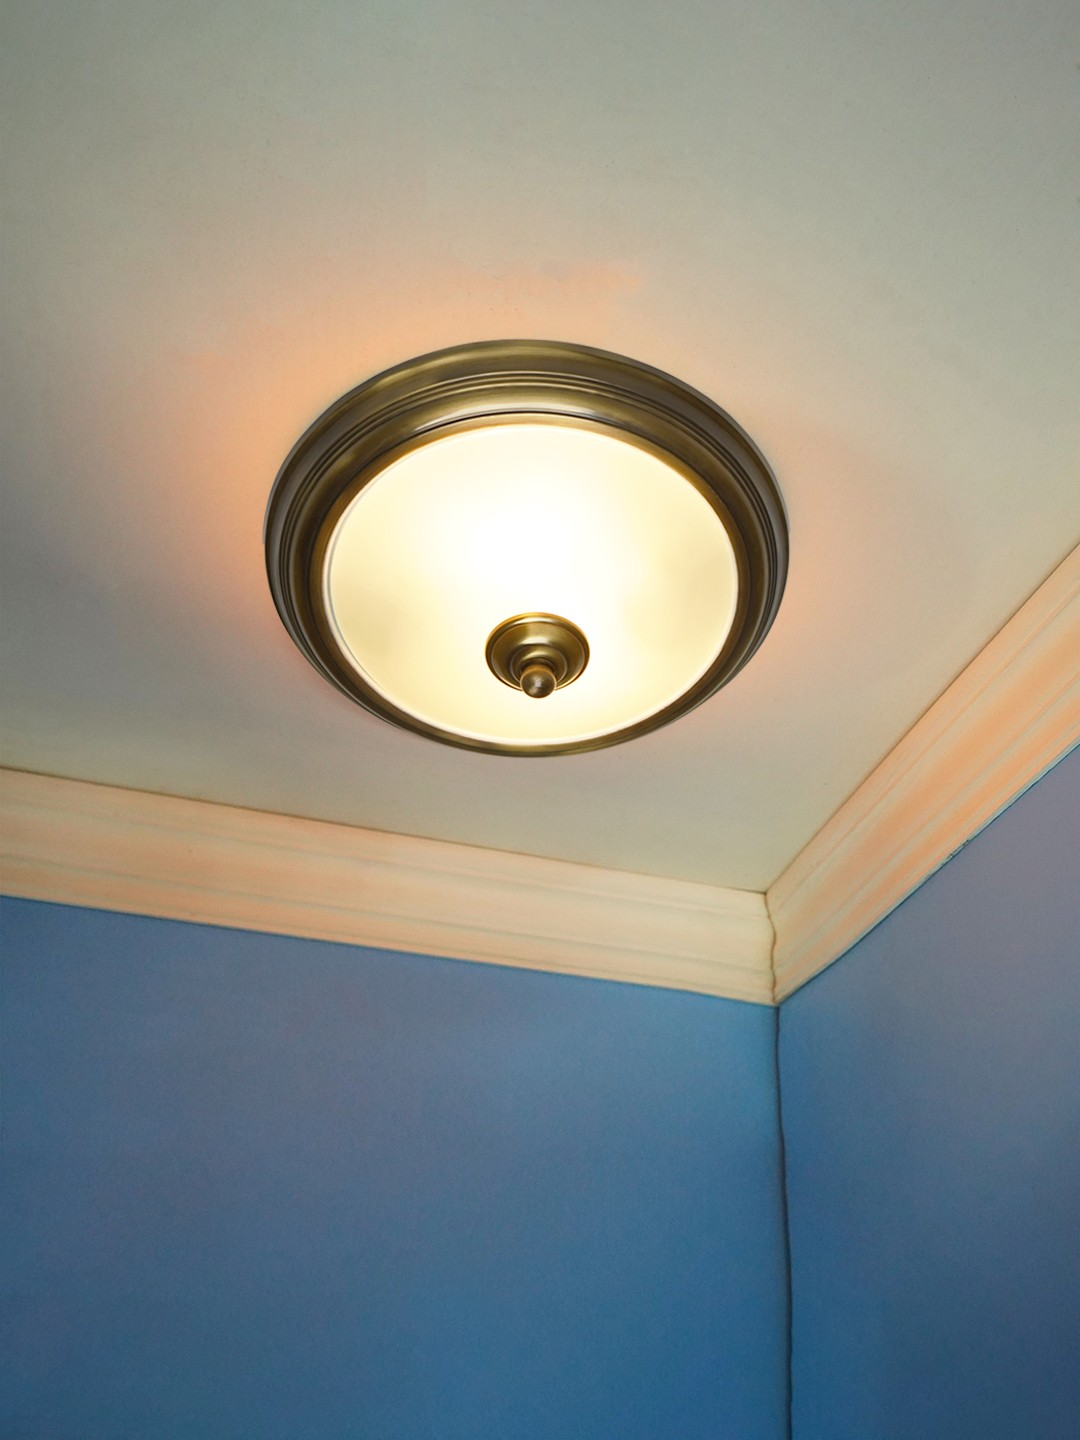 Dish Antique Brass Ceiling Light